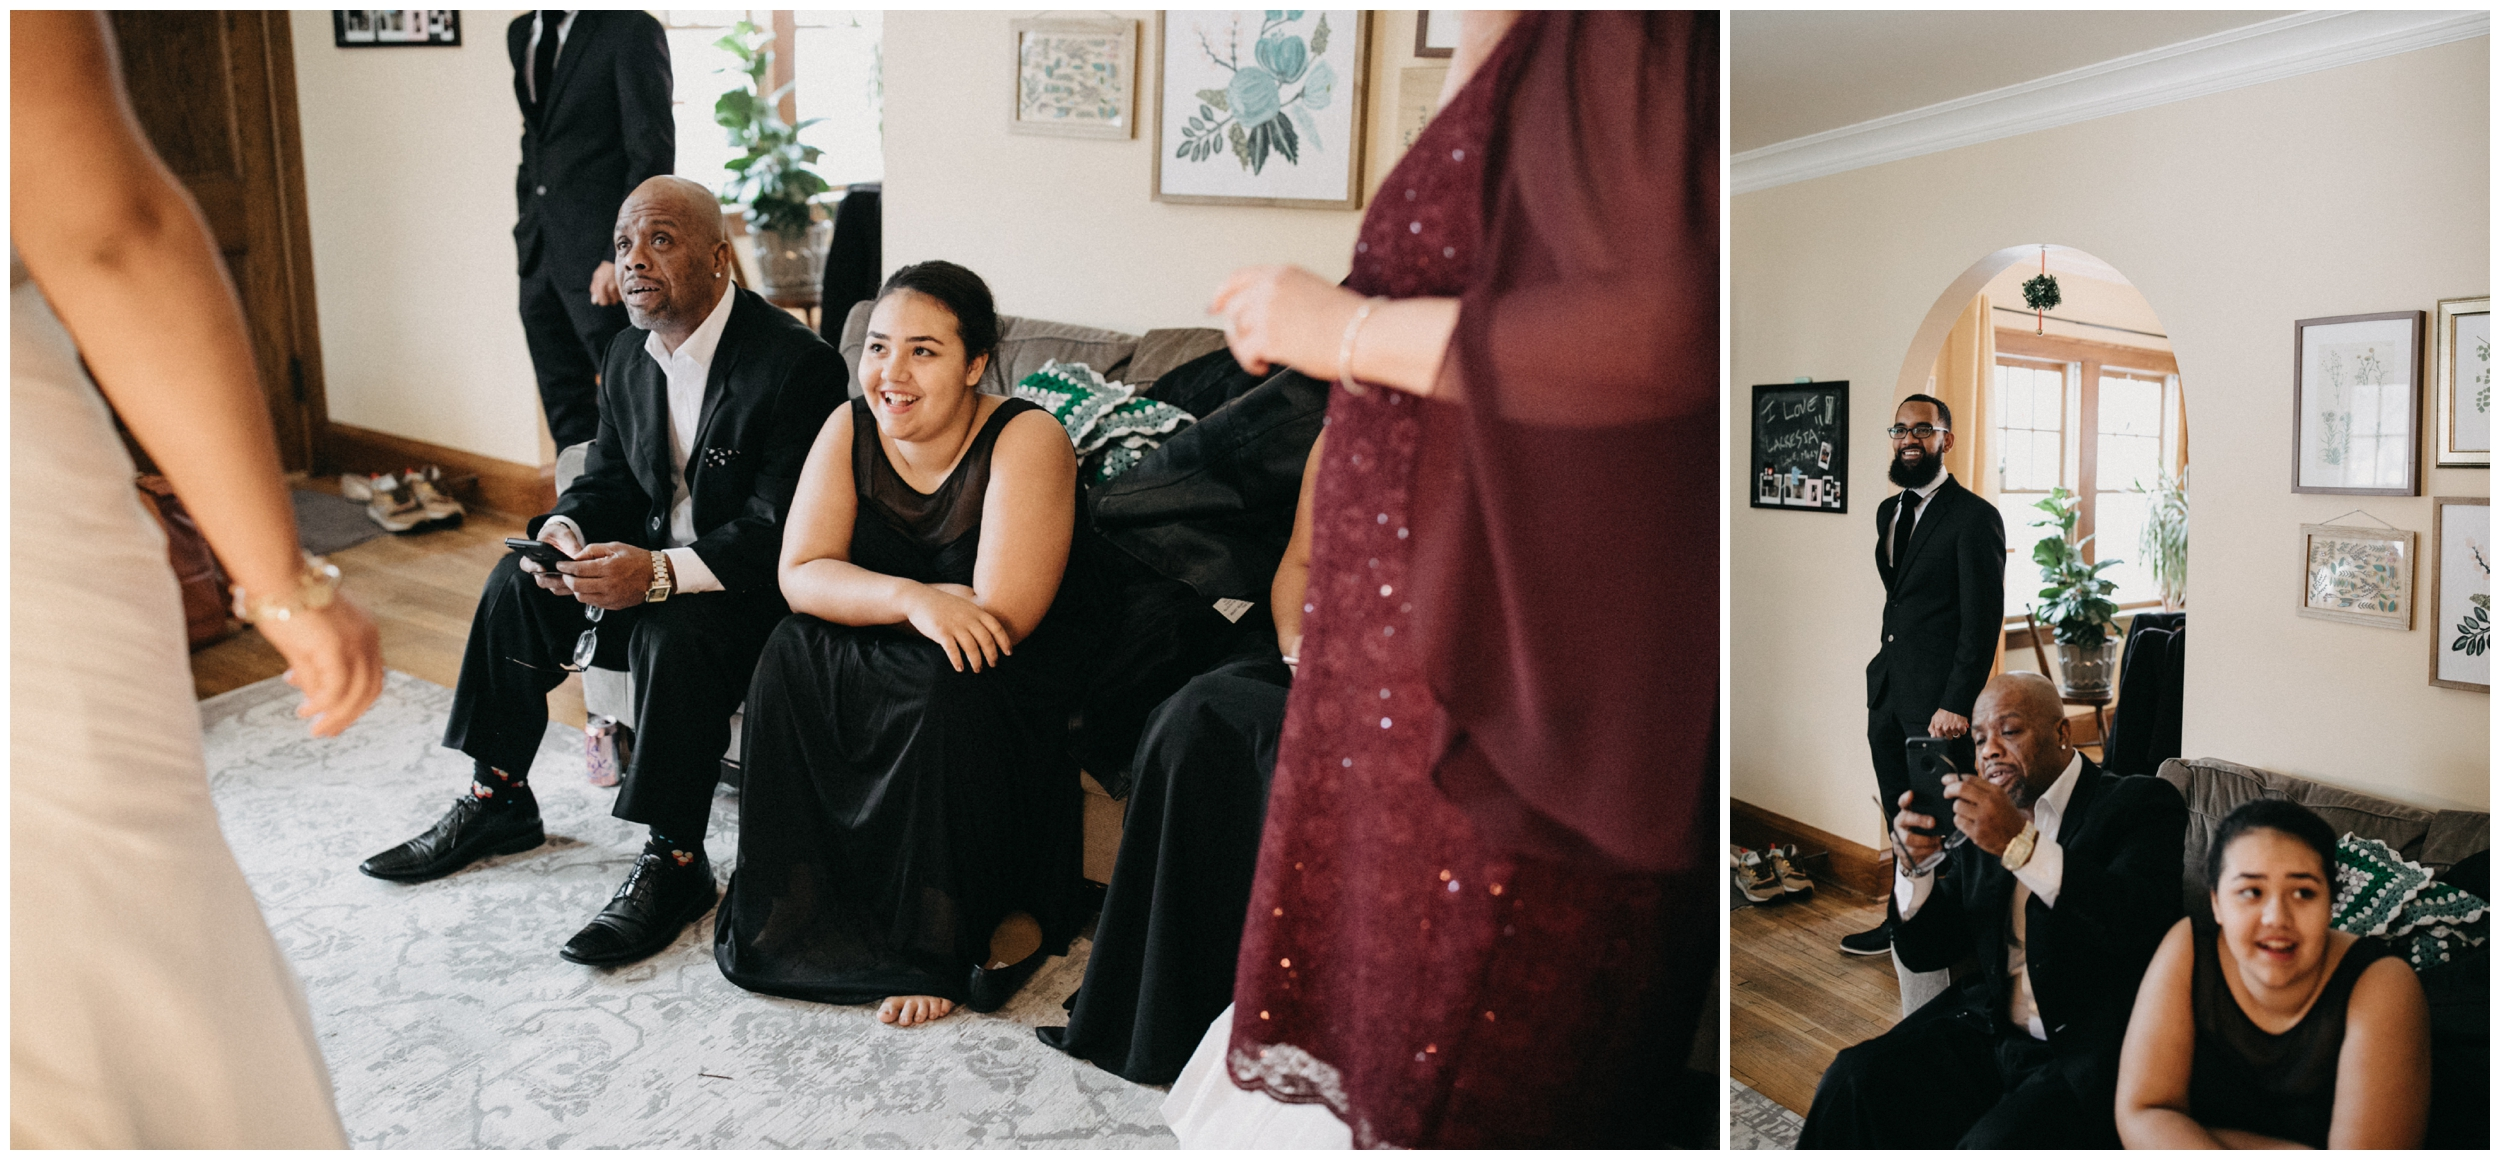 Bride revealing wedding dress to family at her home in Minneapolis